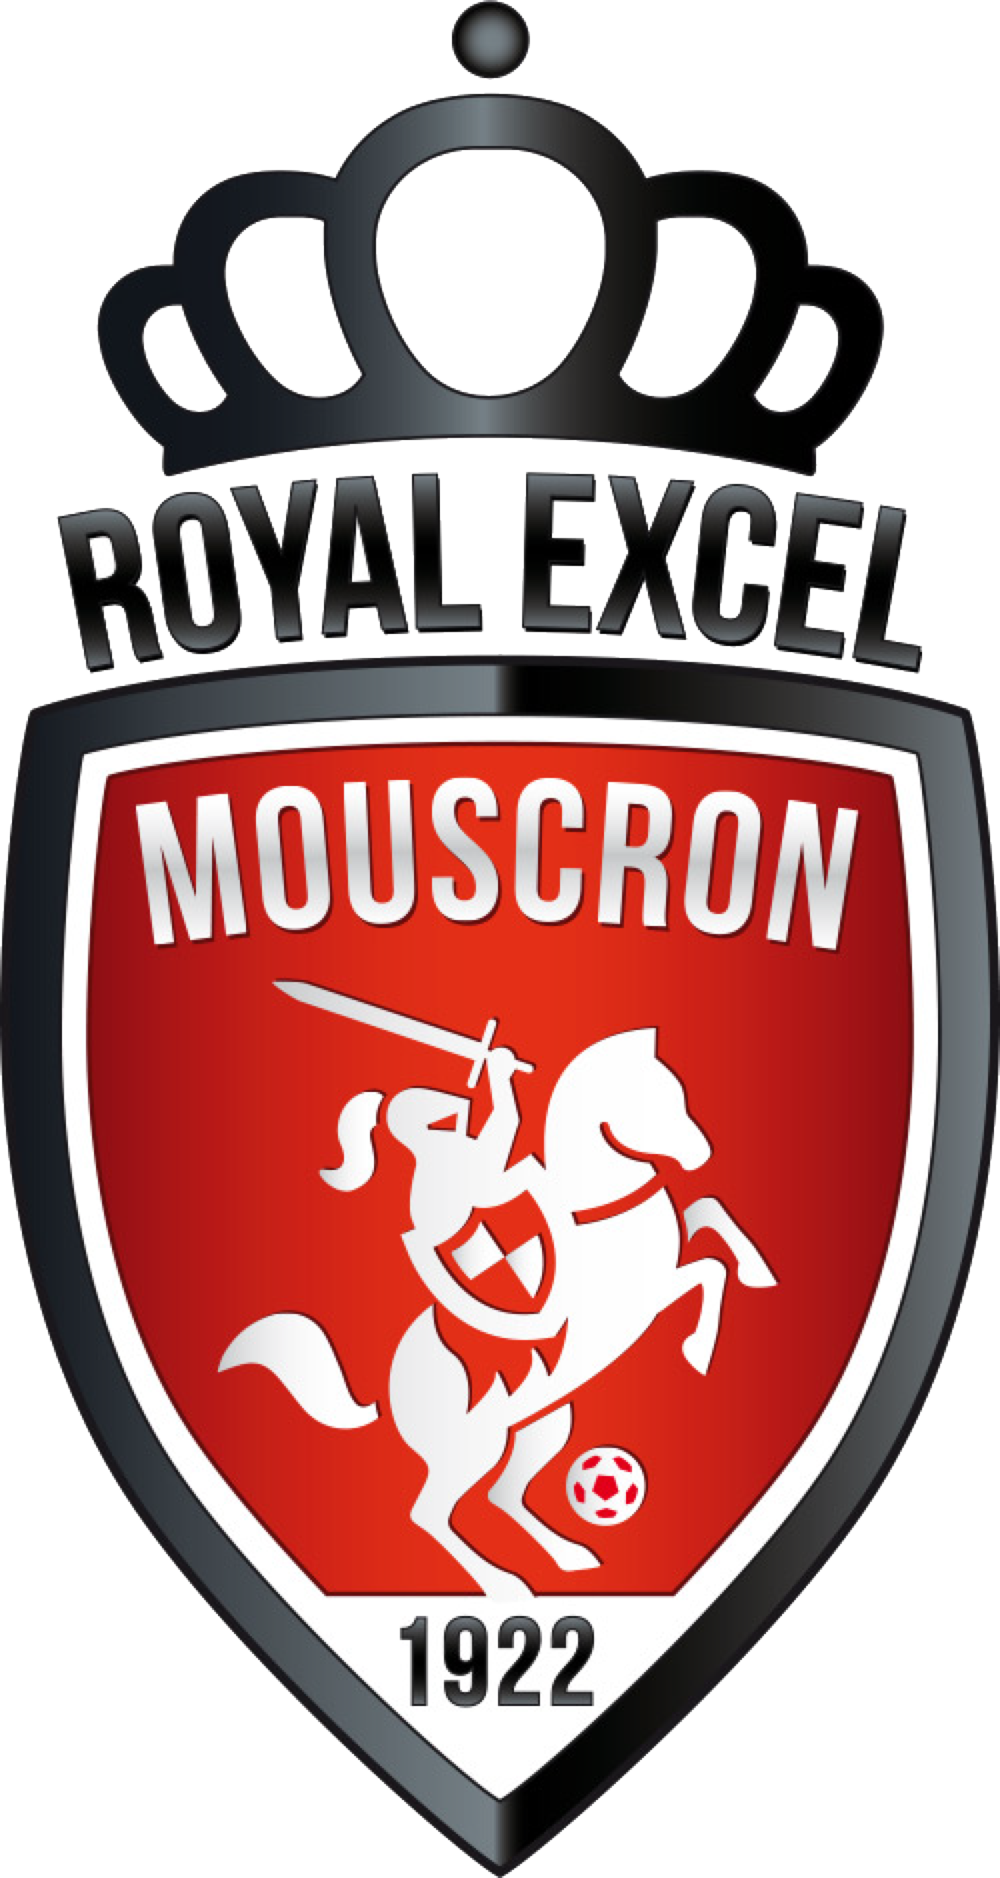 Mouscron.png